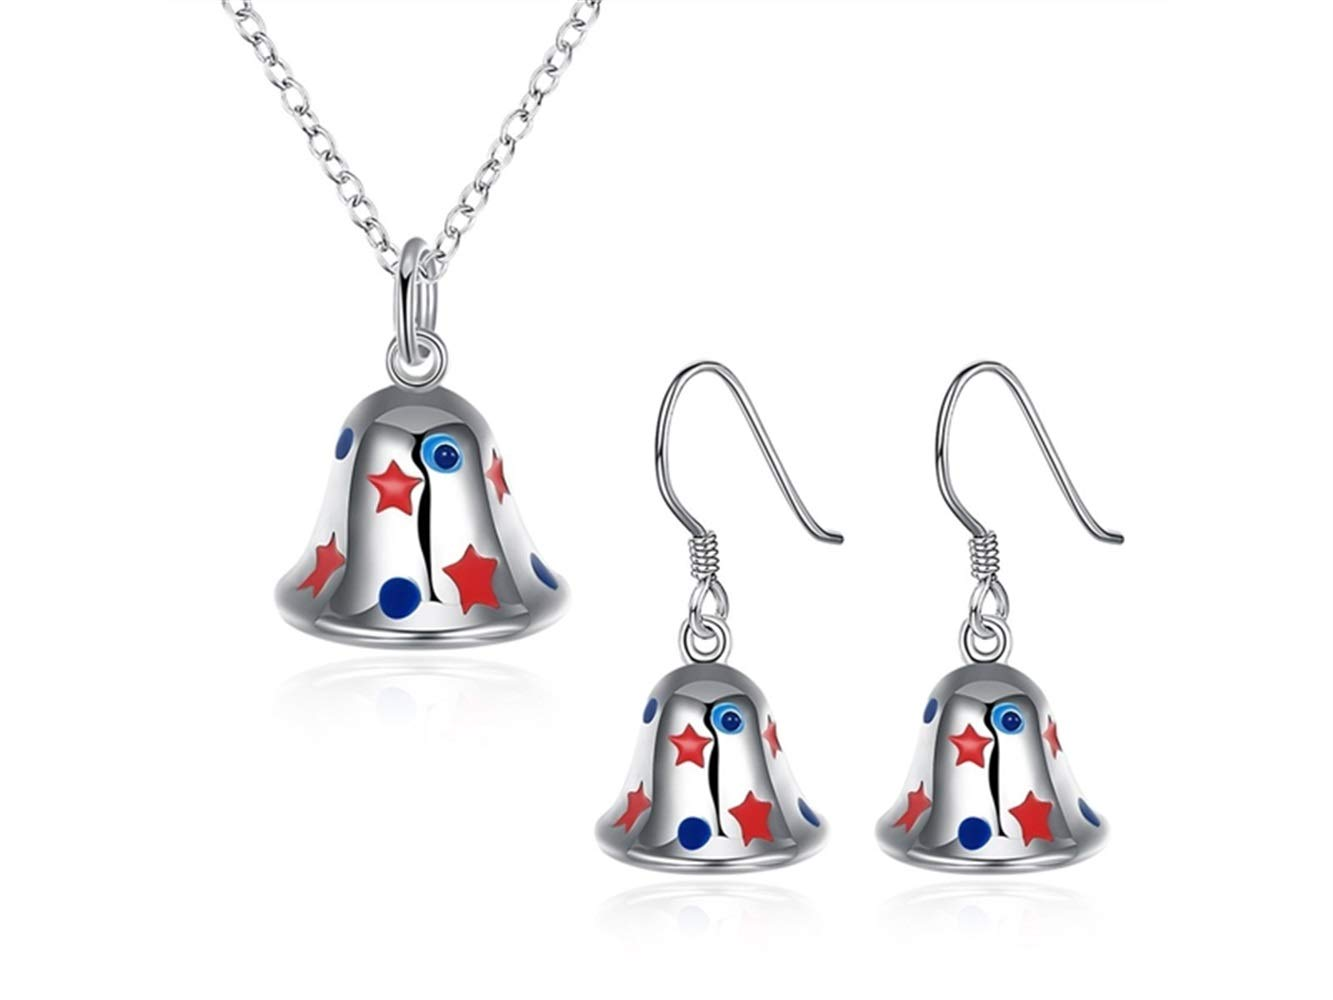 Yuchoi Girl Jewelry Bell Pendant Necklace Earrings Set Christmas Jewelry Decoration(Silver)